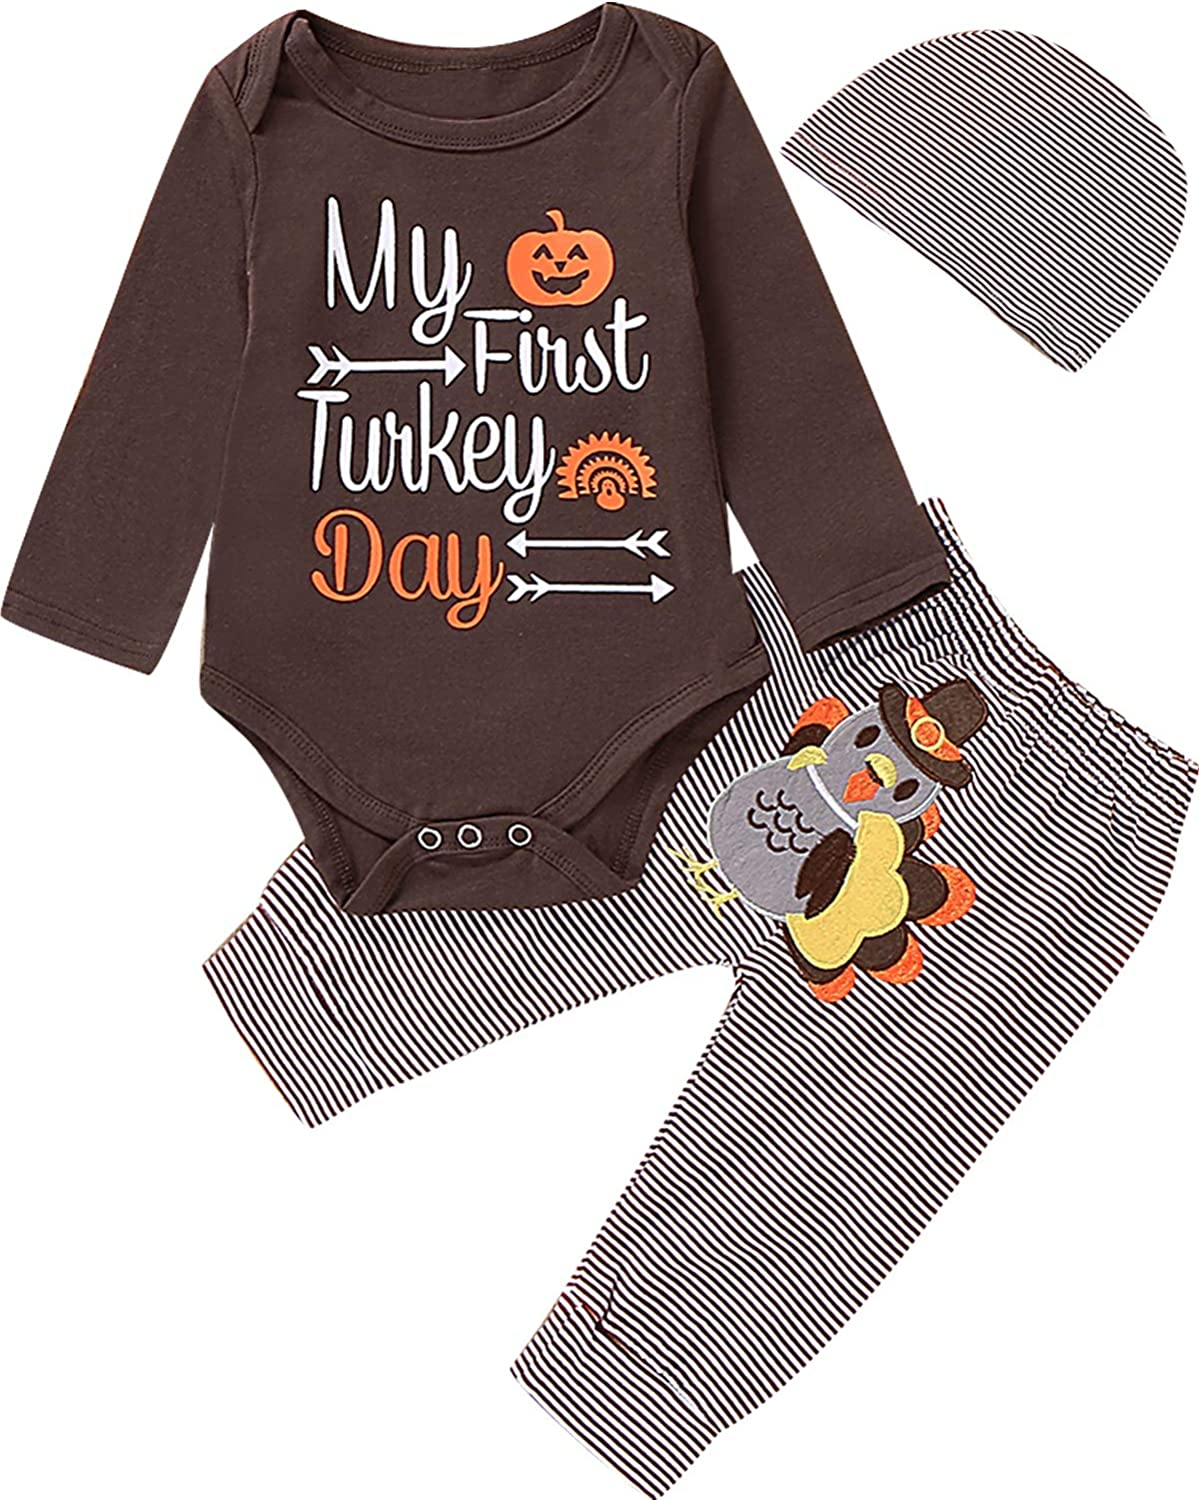 Newborn Boy Girl Thanksgiving Day Outfit Newborn 1st Thanksgiving Clothes Turkey Outfit